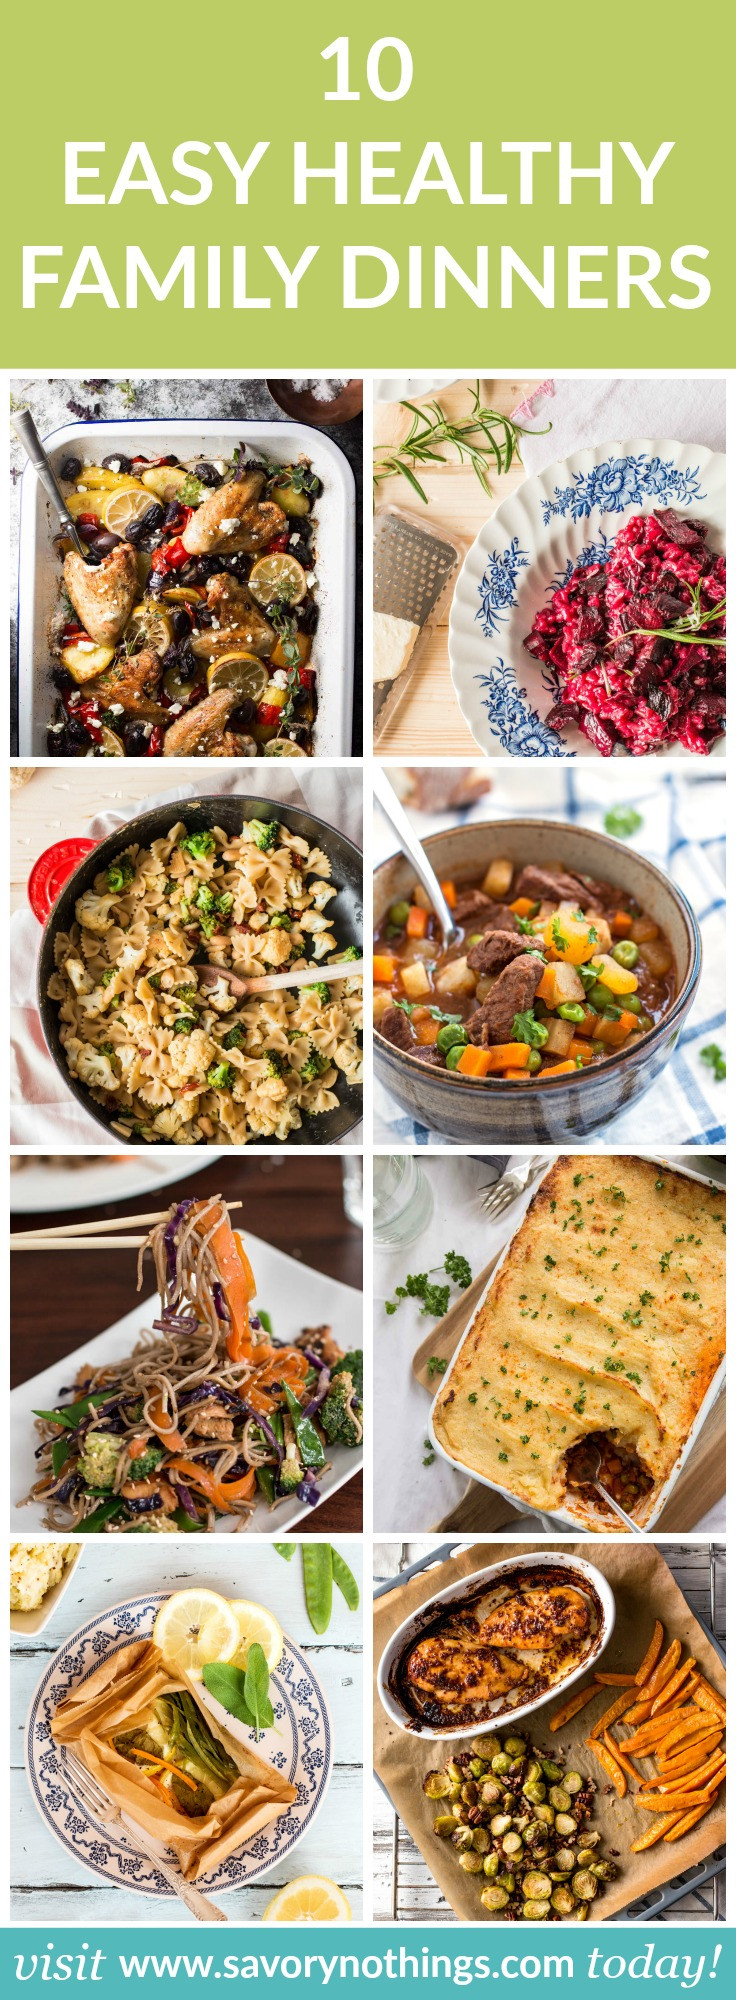 Healthy Family Dinners  10 Healthy Family Dinners Easy Recipes for Busy Weeknights